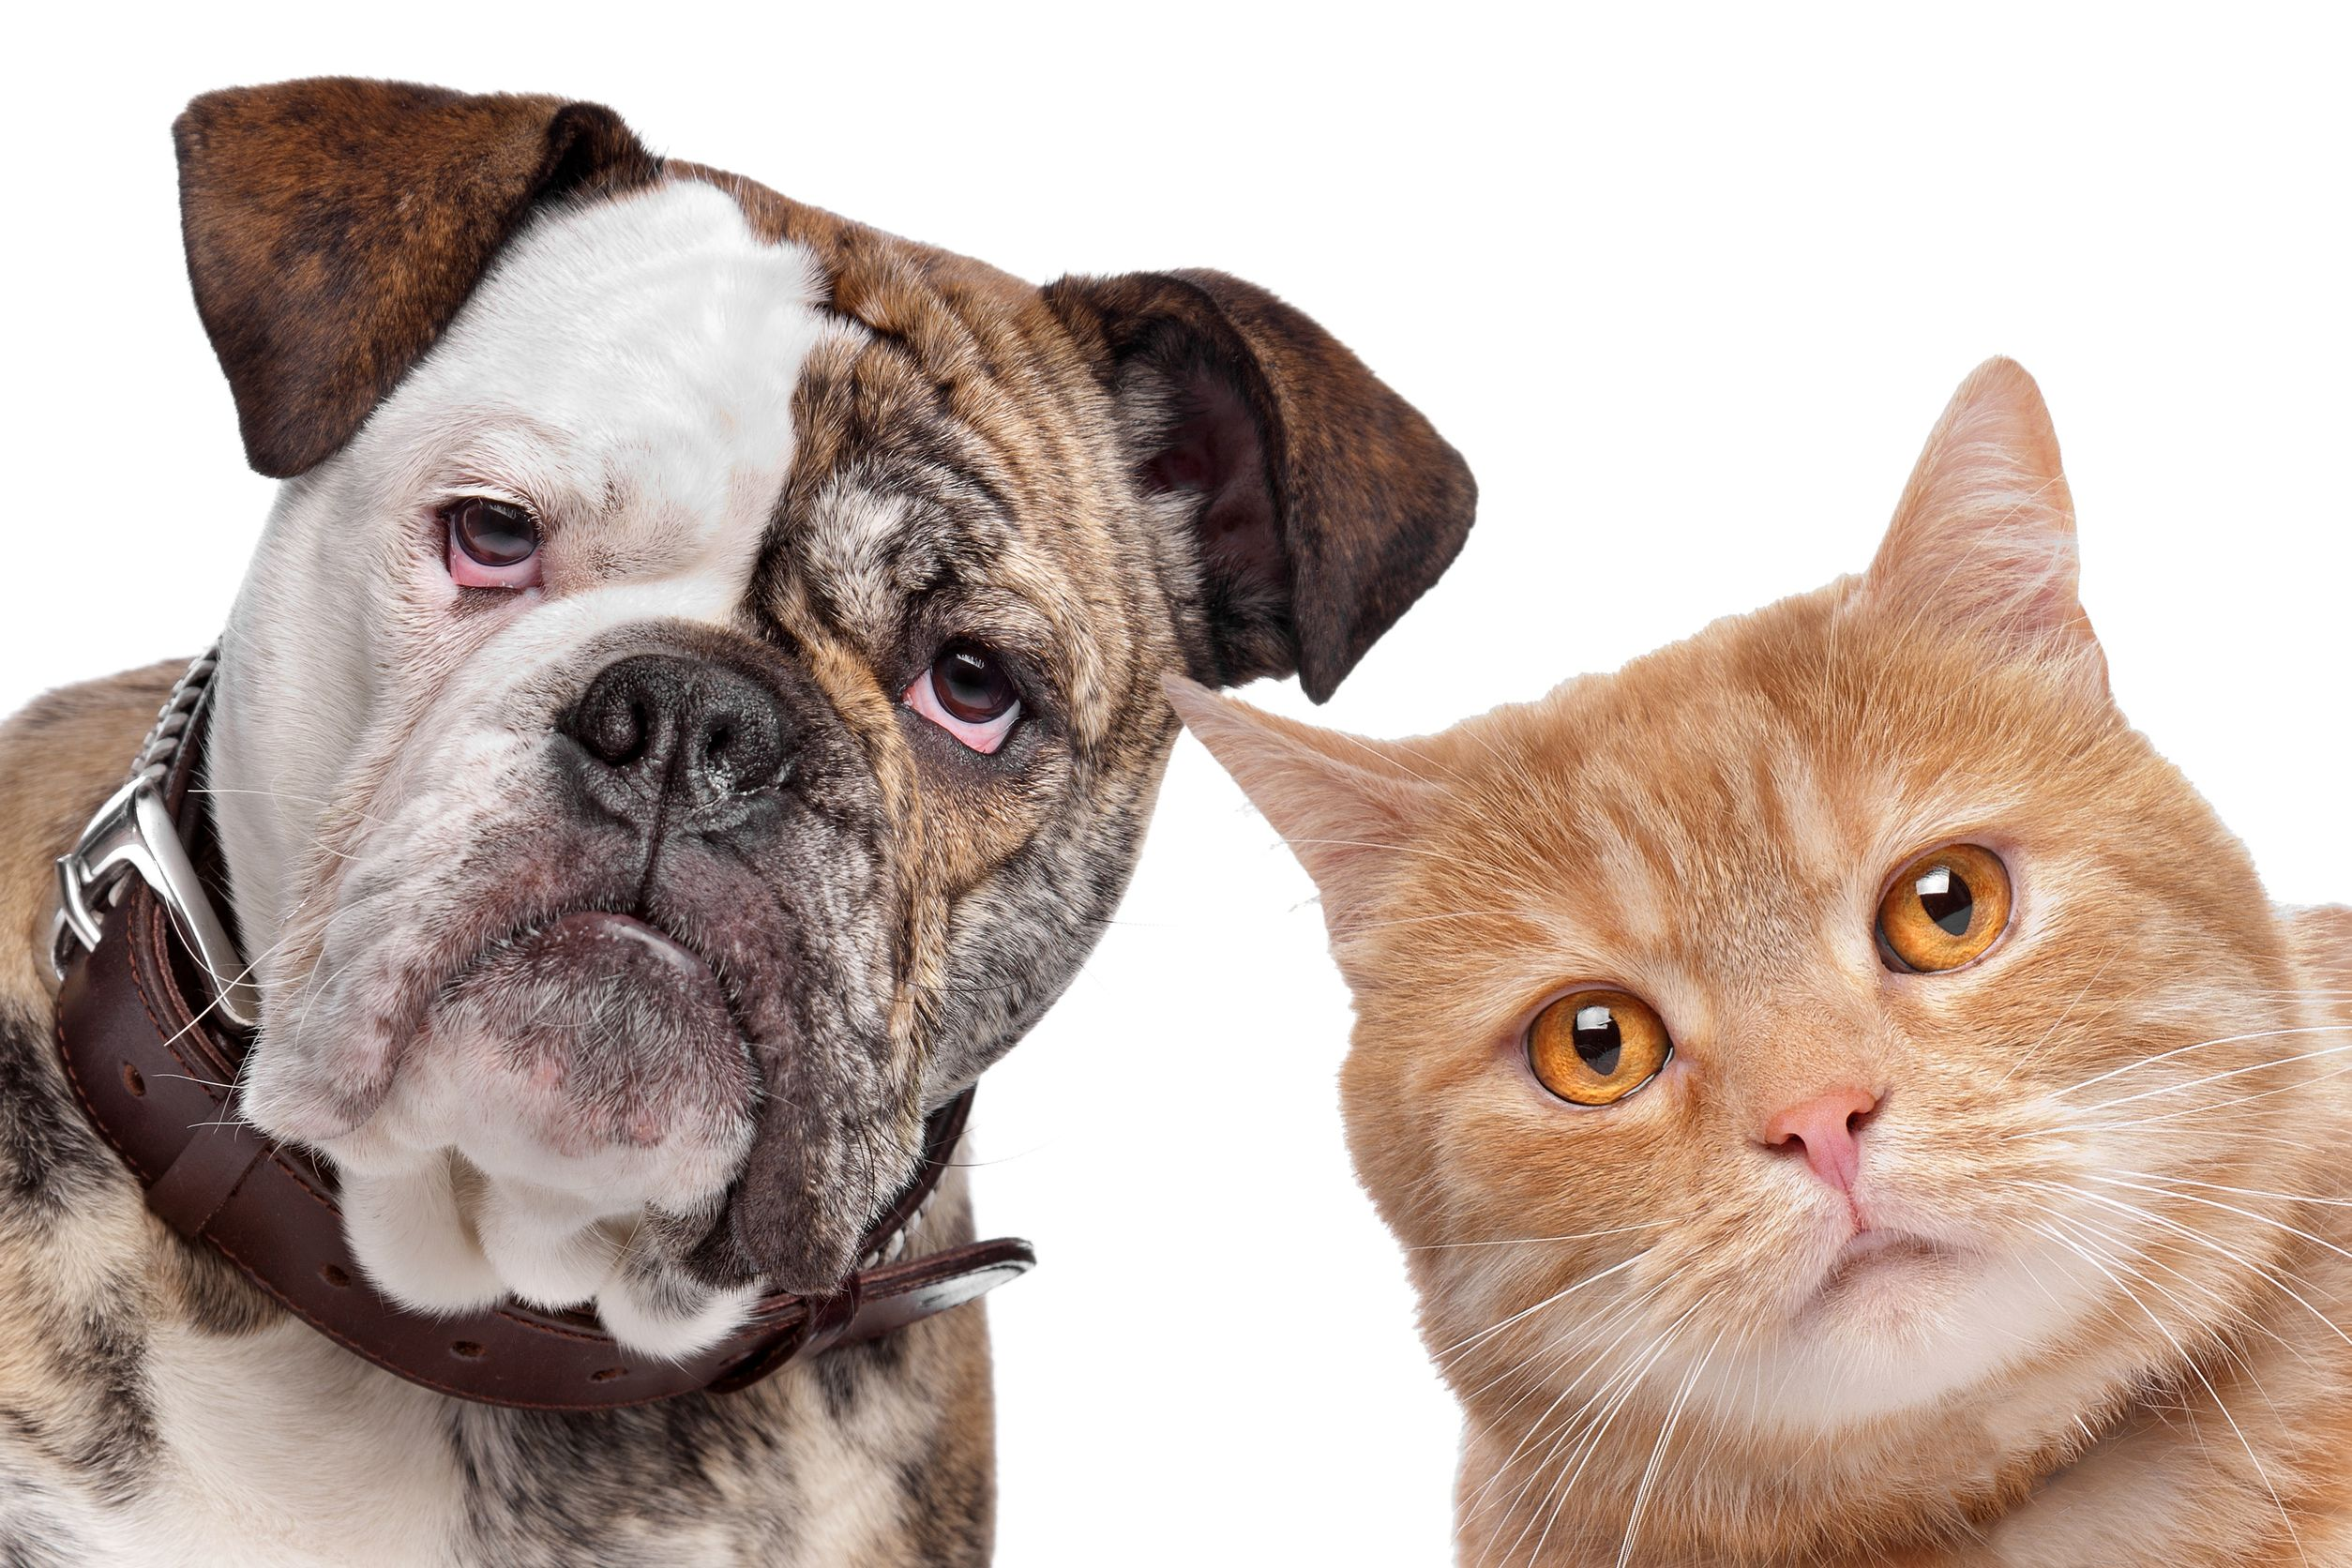 12375045 - english bulldog and a red cat in front of a white background